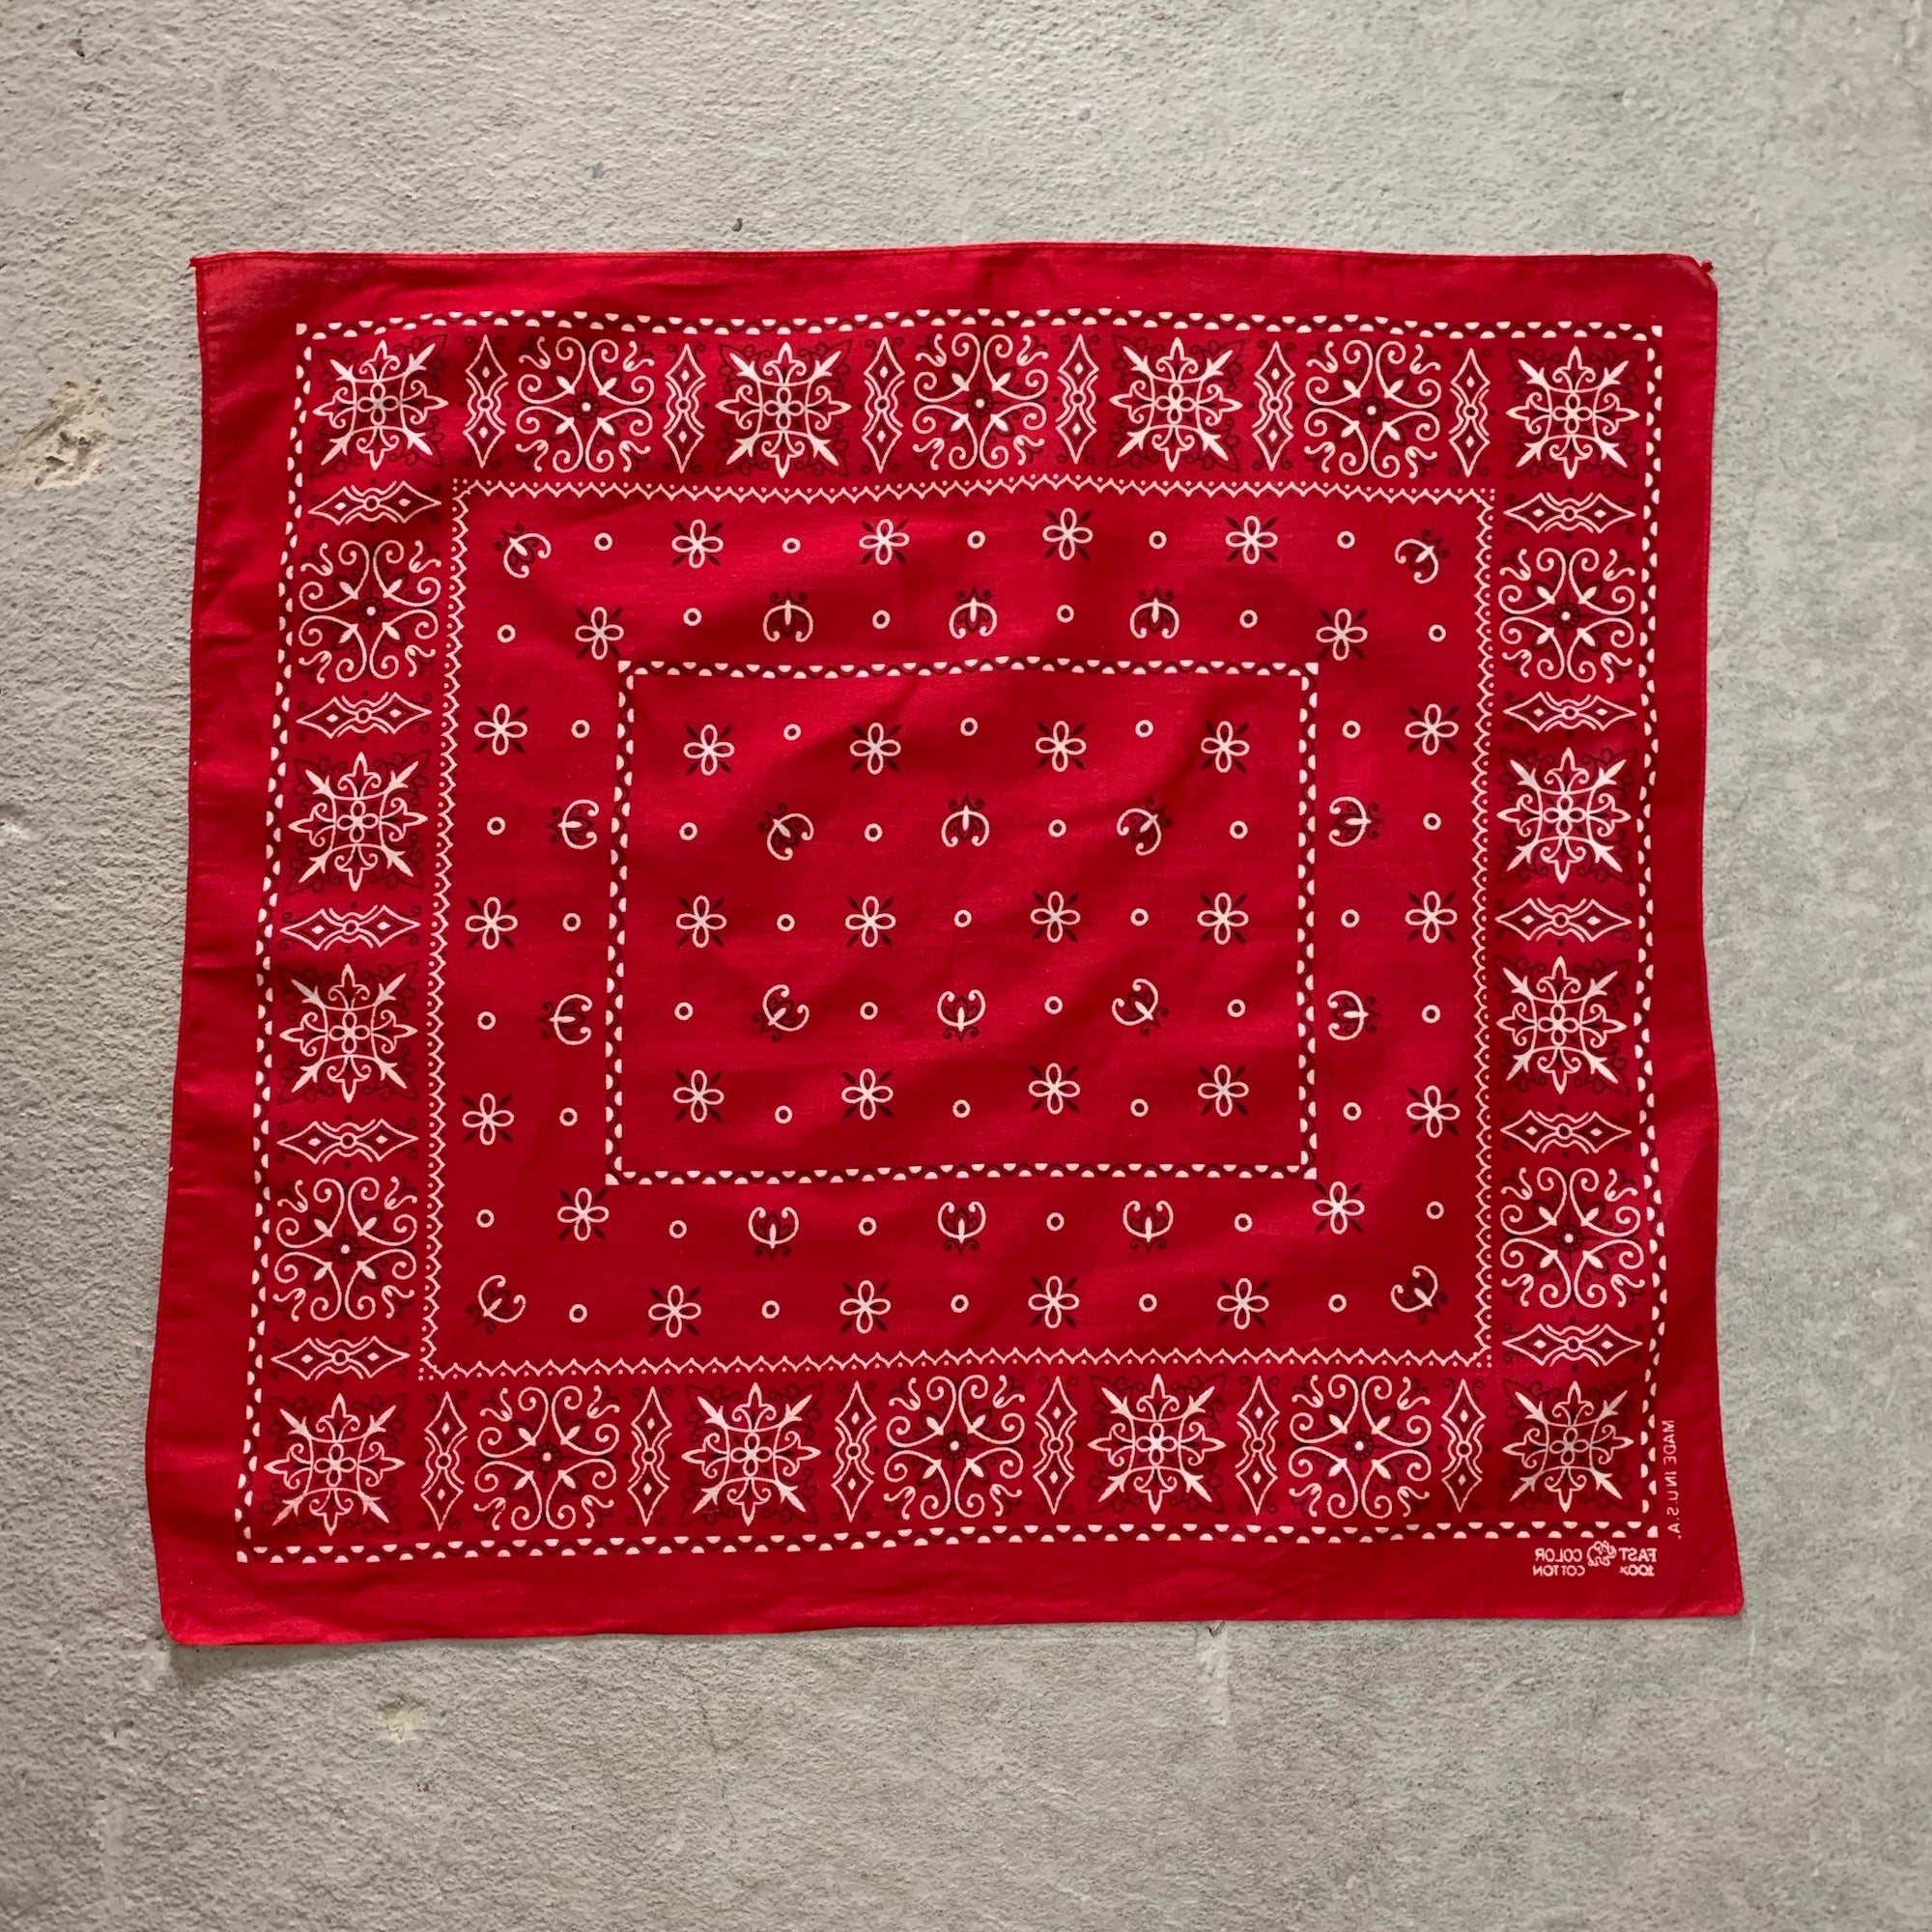 Vintage Elephant Brand Trunk Up Bandana